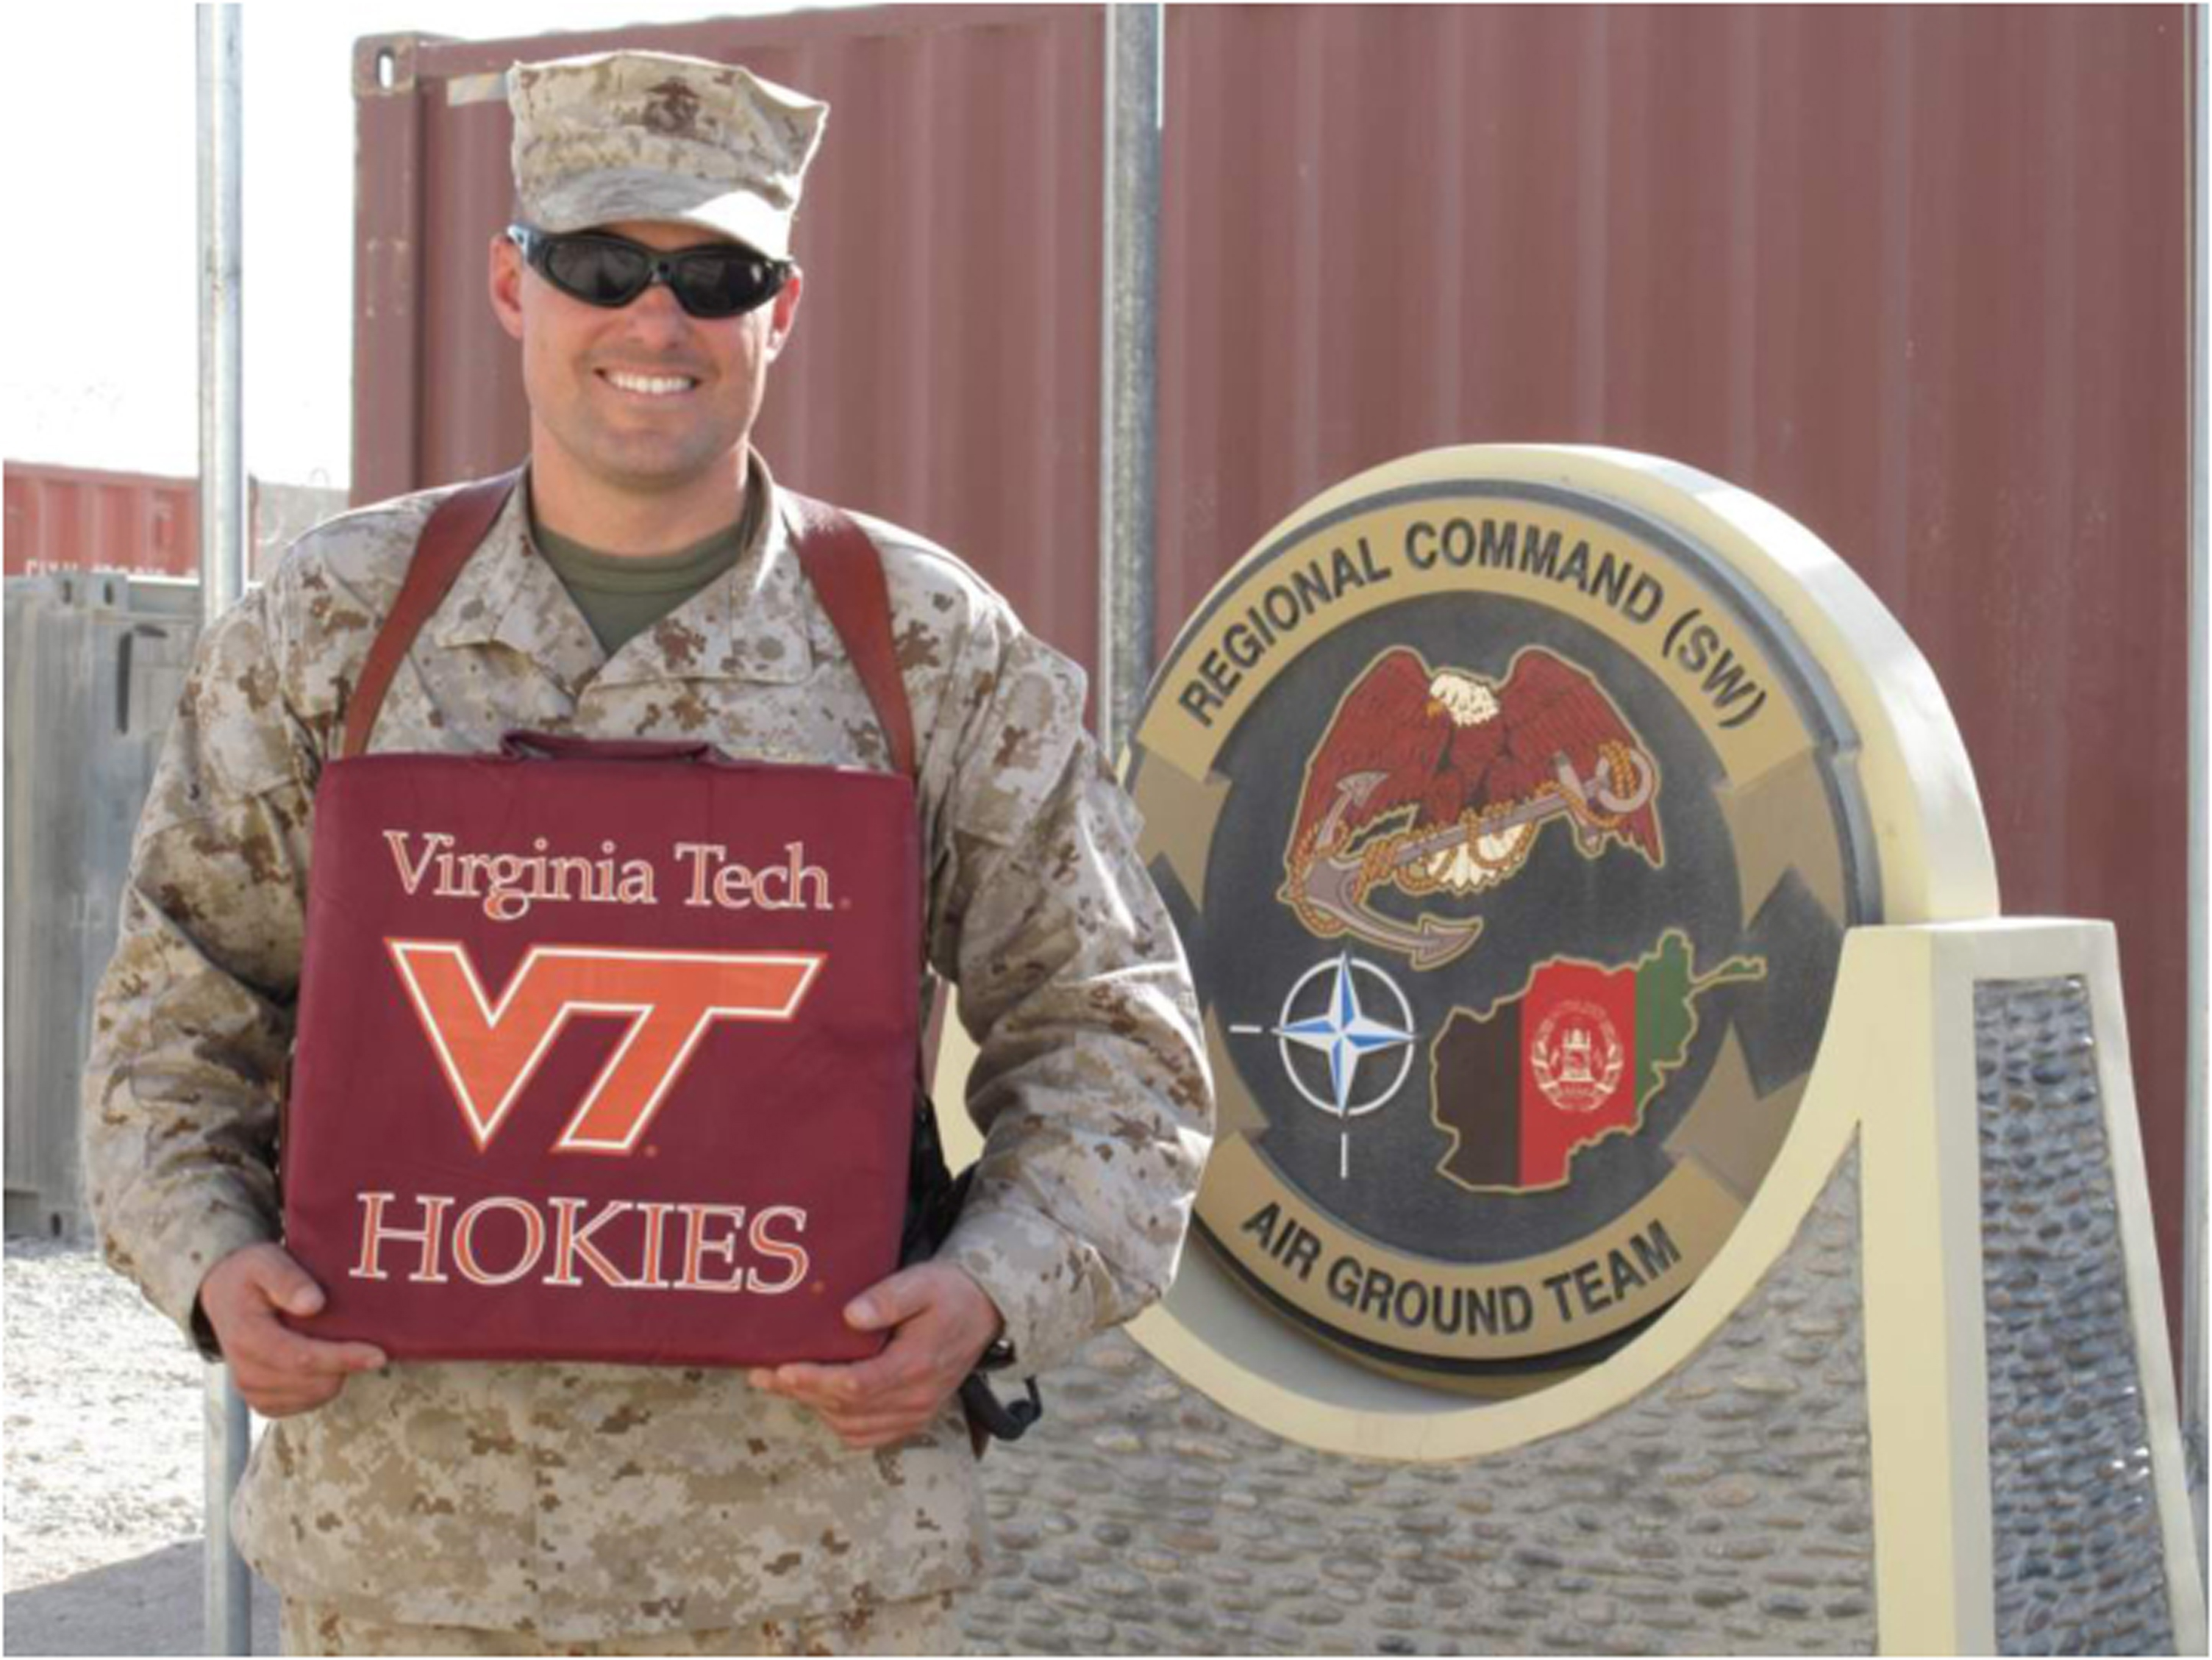 Maj. Dave Sadlier, U.S. Marine Corps, Virginia Tech Corps of Cadets Class of 1995